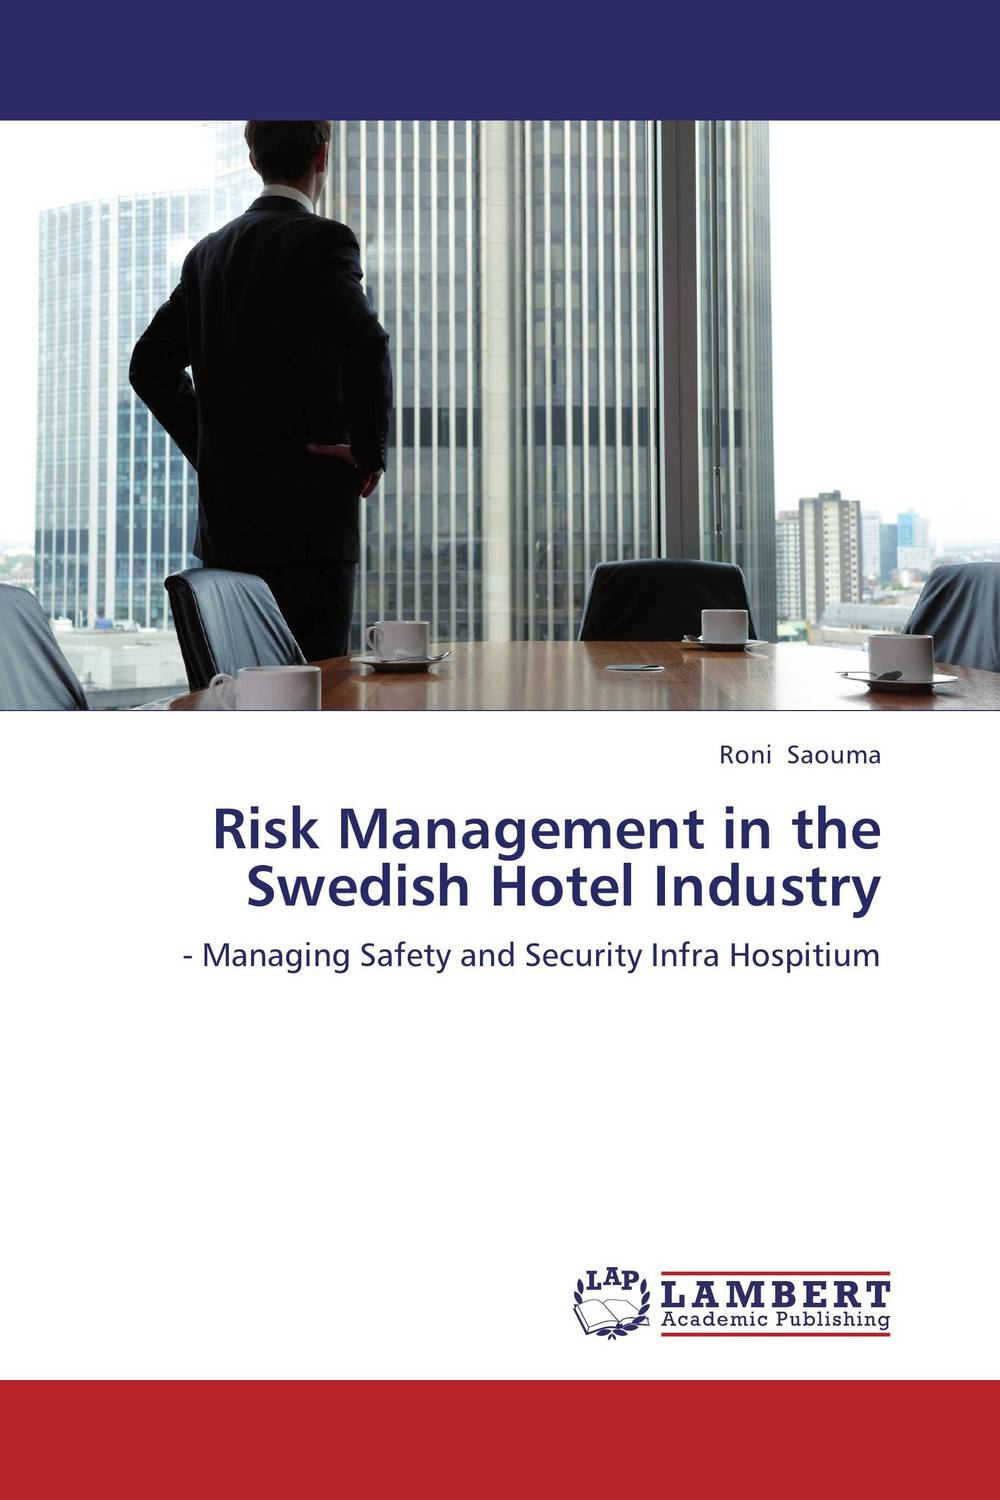 Risk Management in the Swedish Hotel Industry